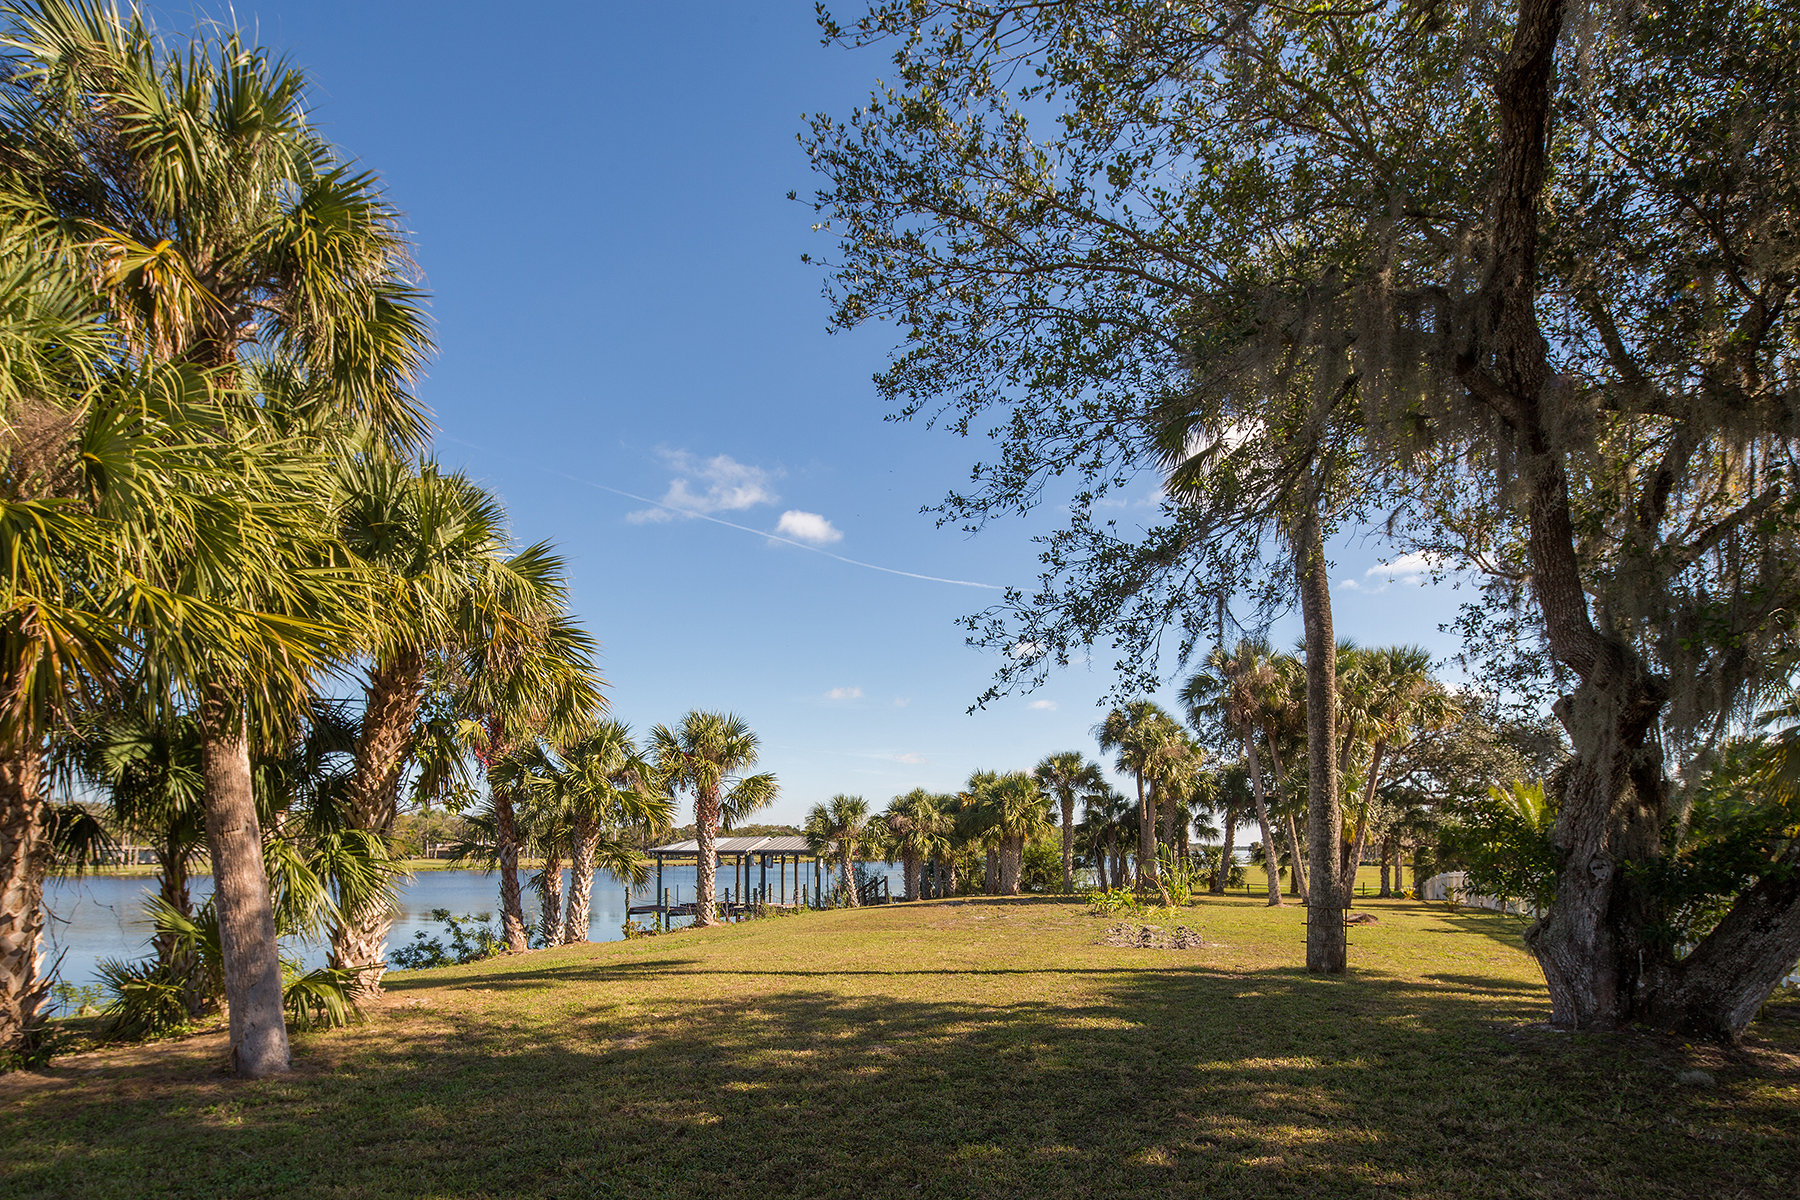 Additional photo for property listing at 17331 Palm Beach Blvd , Alva, FL 33920 17331  Palm Beach Blvd,  Alva, Florida 33920 United States